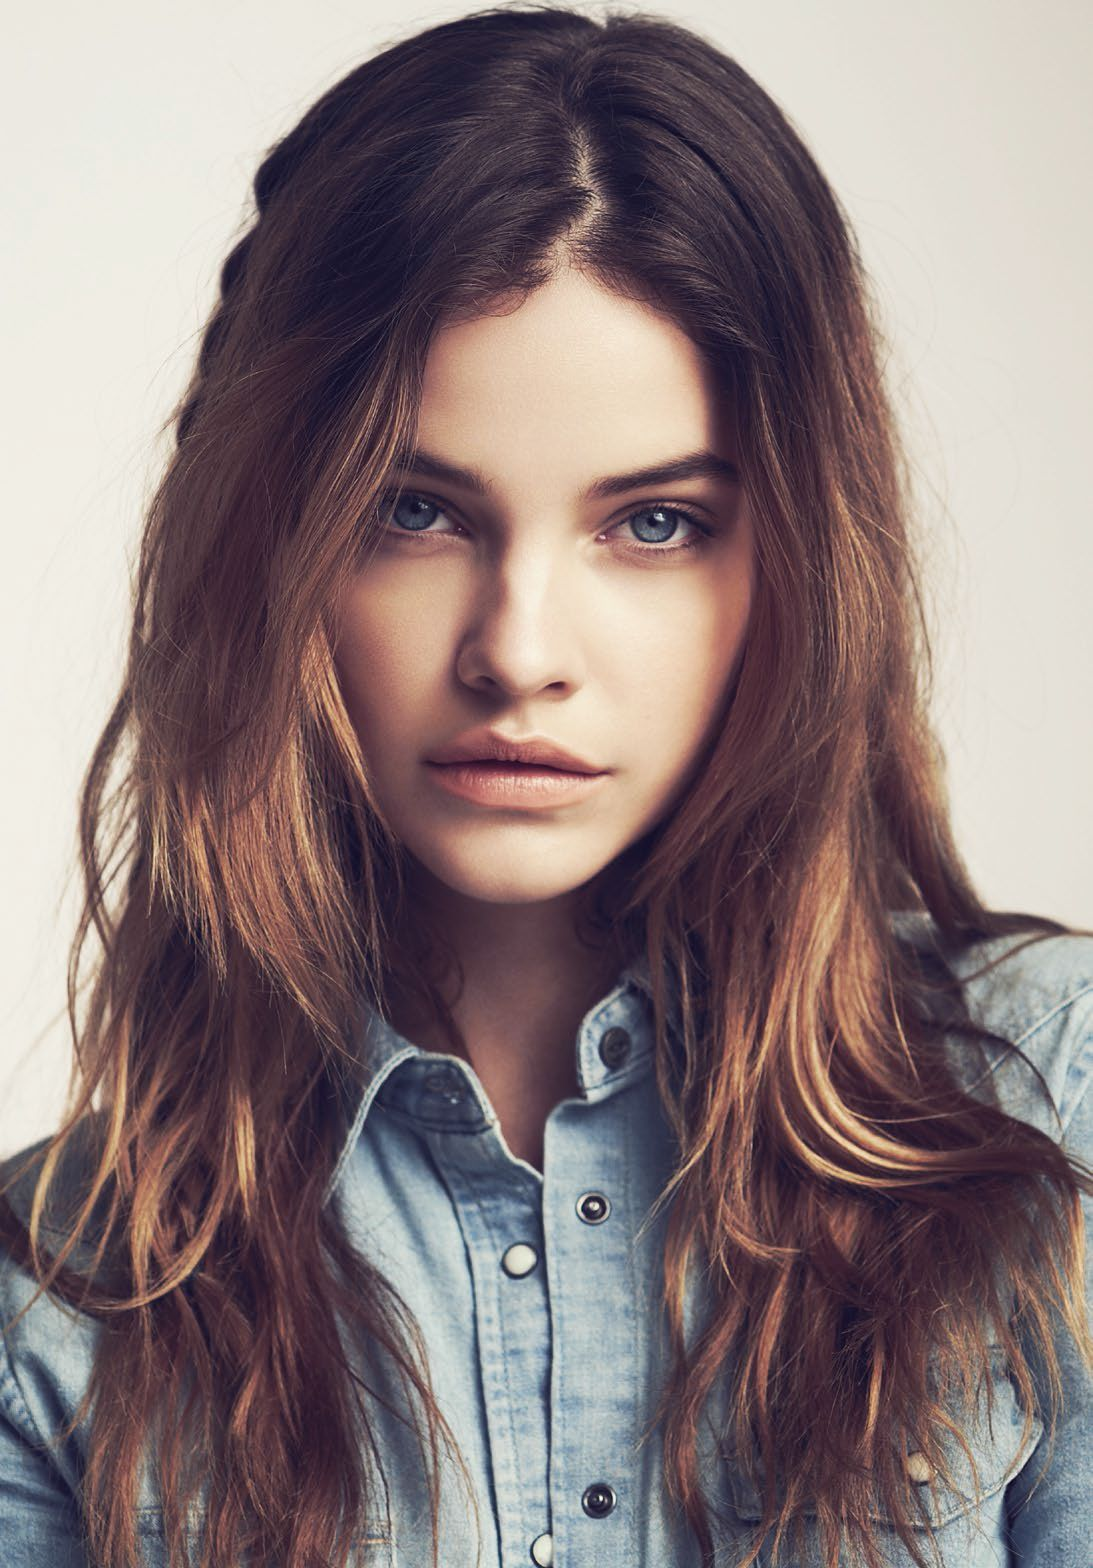 Barbara Palvin earned a  million dollar salary, leaving the net worth at 1.2 million in 2017